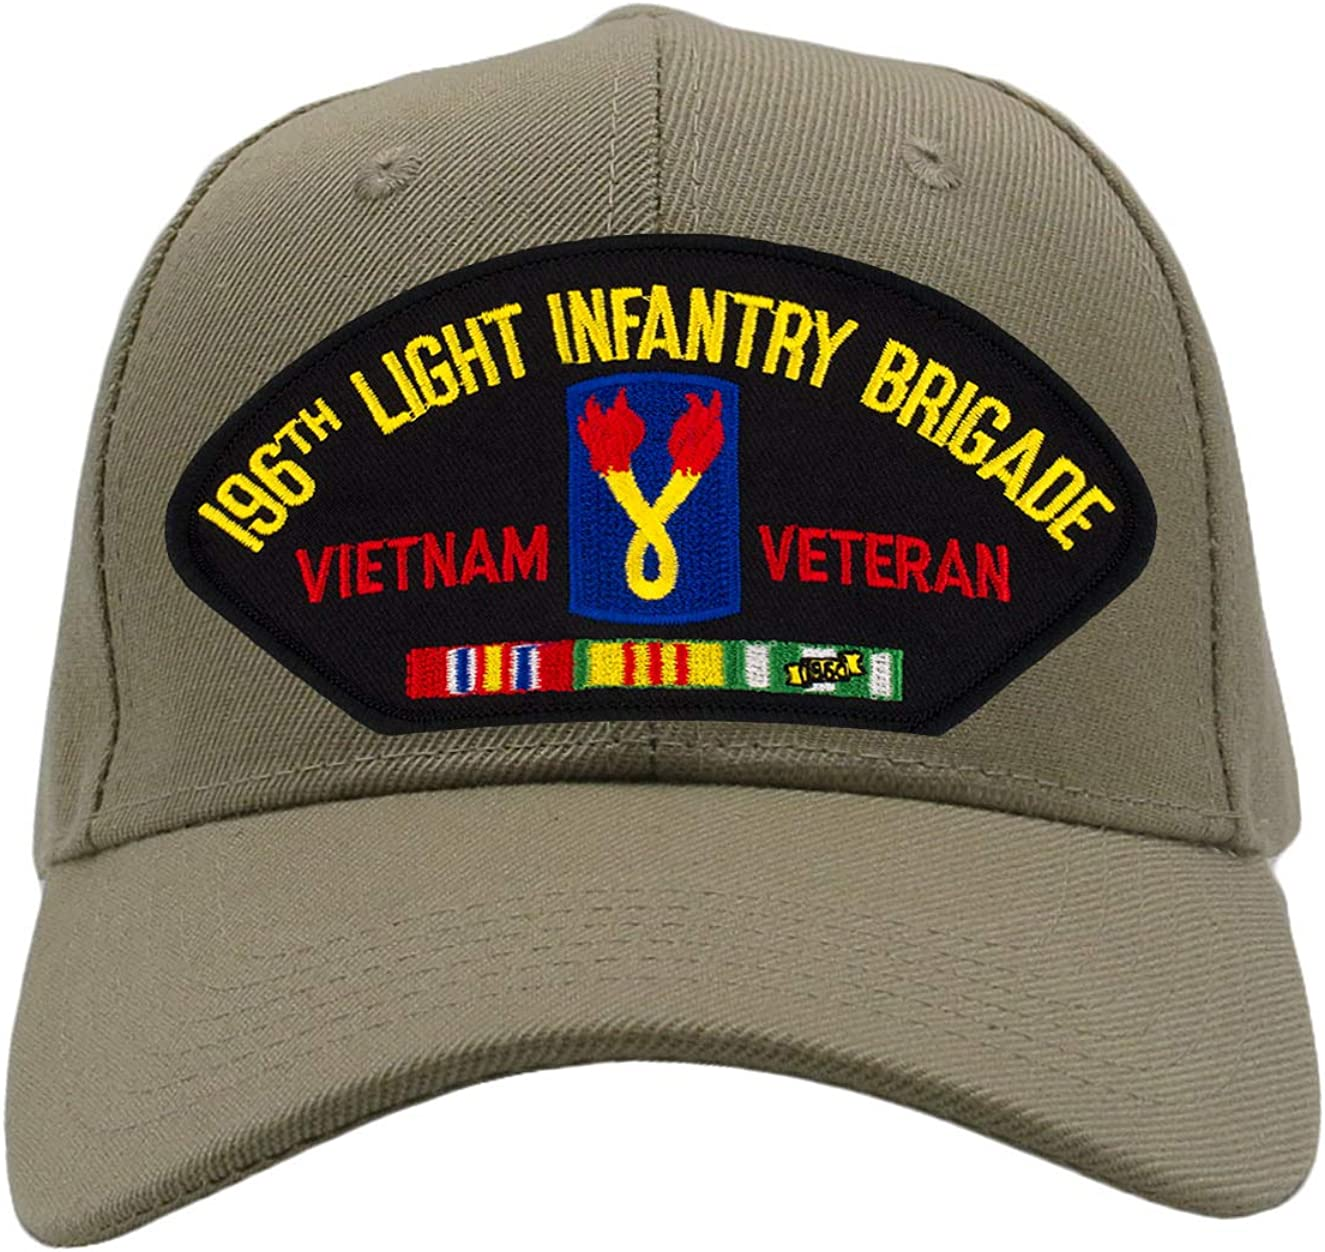 Vietnam Hat//Ballcap Adjustable One Size Fits Most PATCHTOWN 196th Light Infantry Brigade